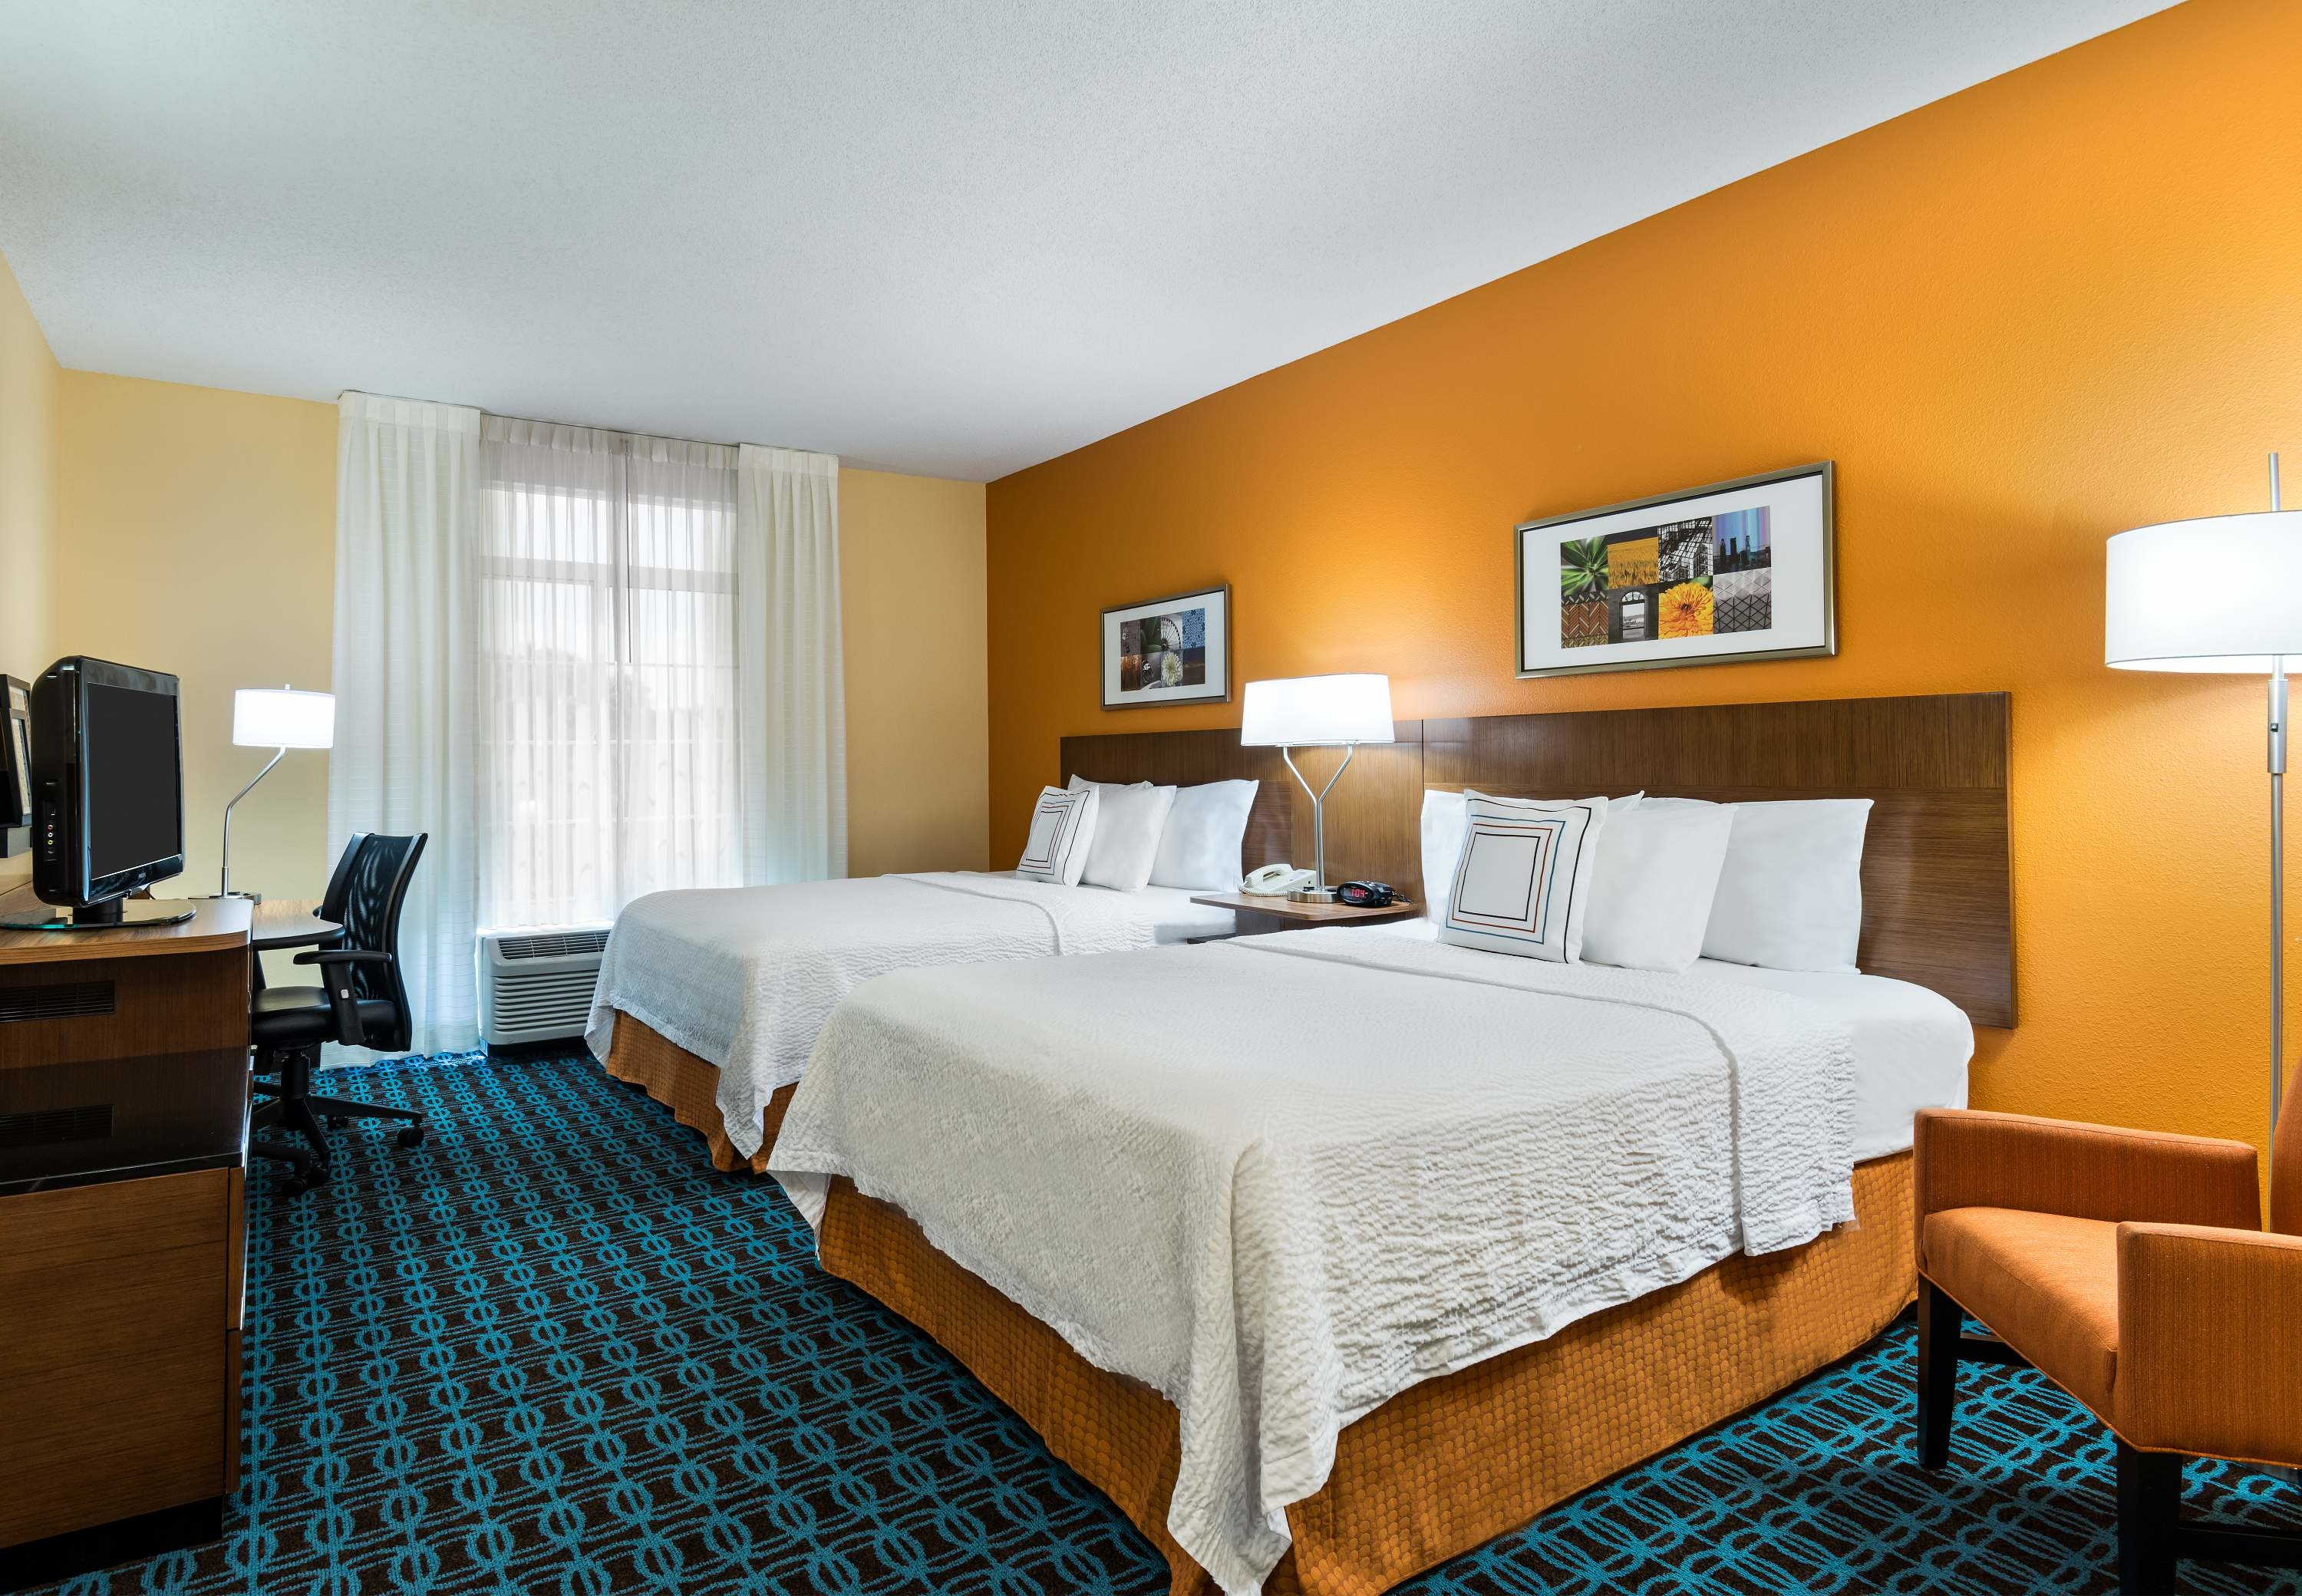 Fairfield Inn & Suites by Marriott Clearwater image 4